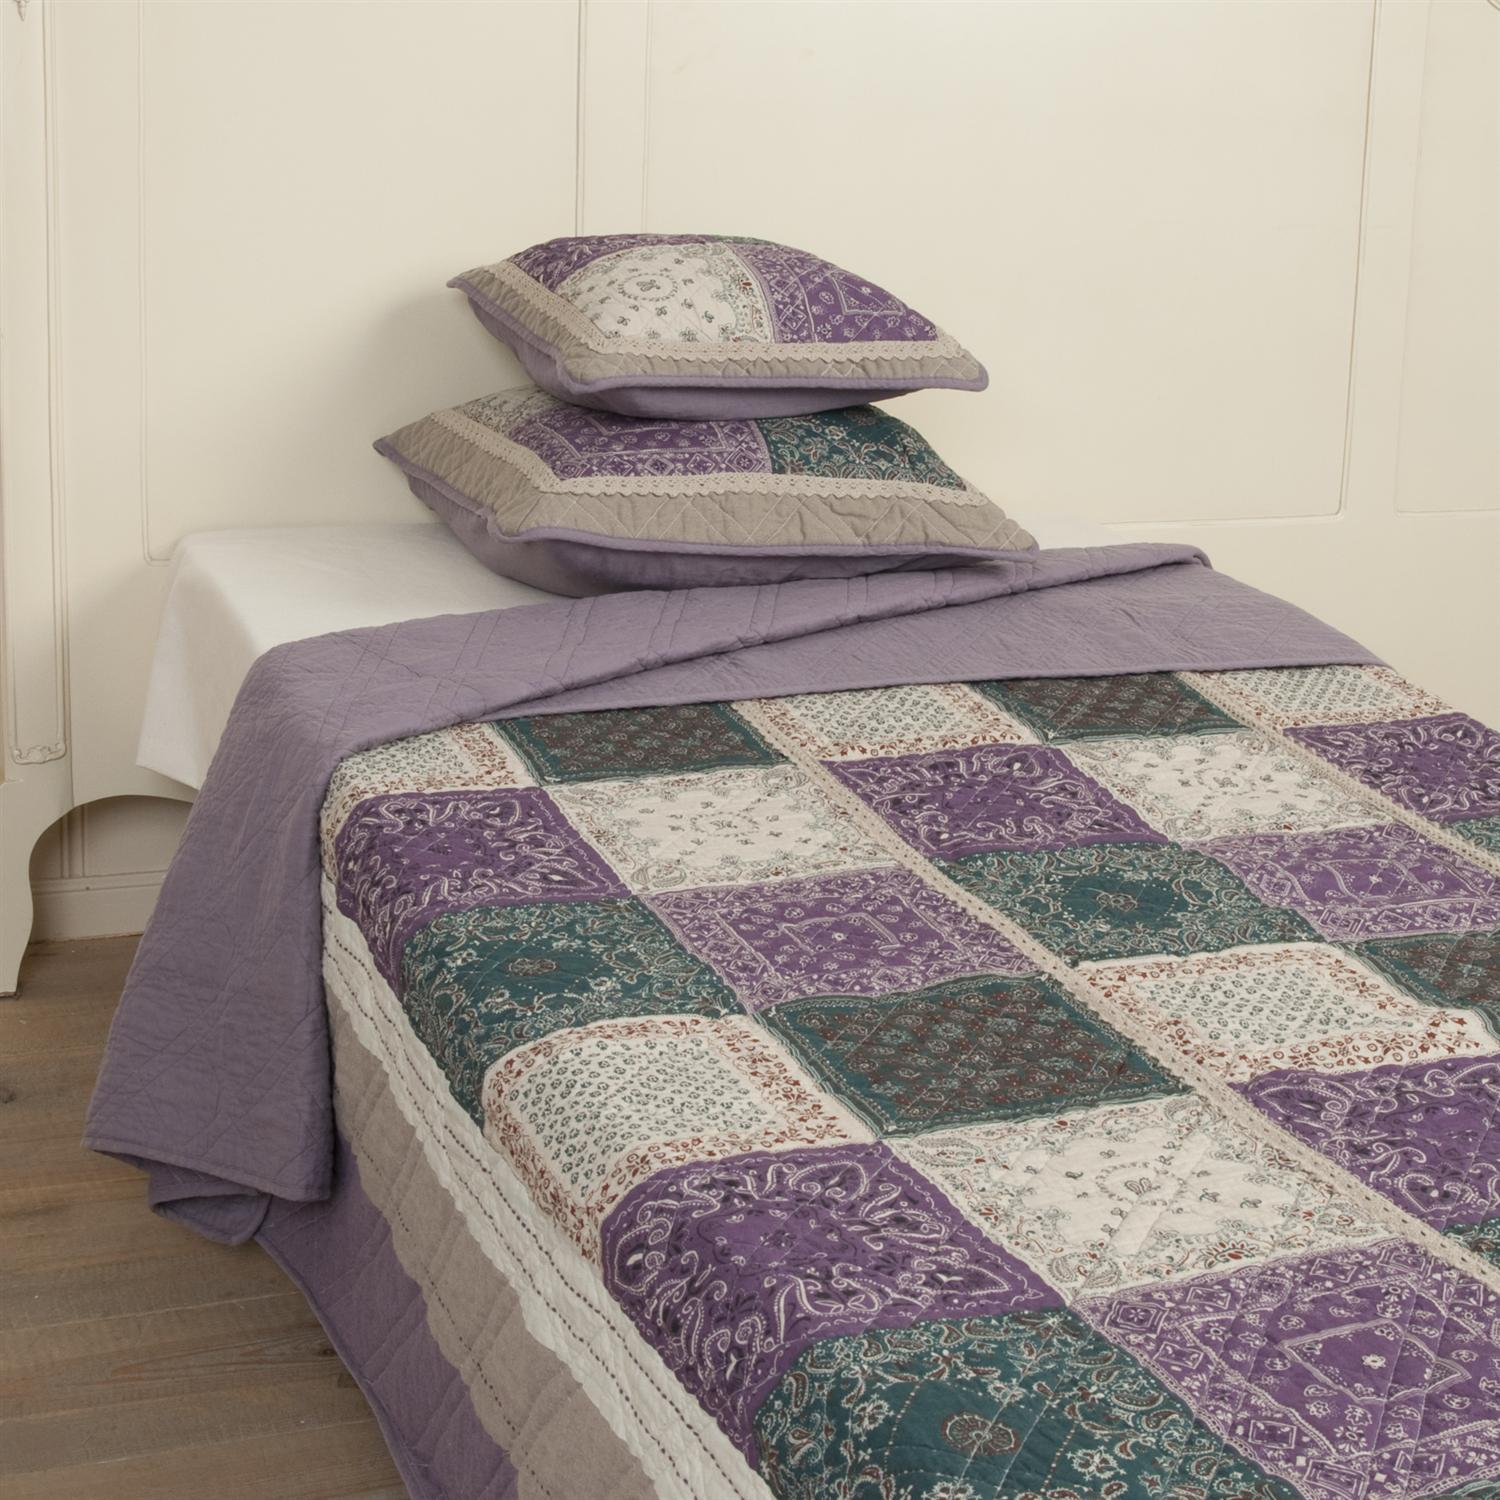 clayre eef tagesdecke quilt plaid purplepatch lila gr n beige versch gr en ebay. Black Bedroom Furniture Sets. Home Design Ideas